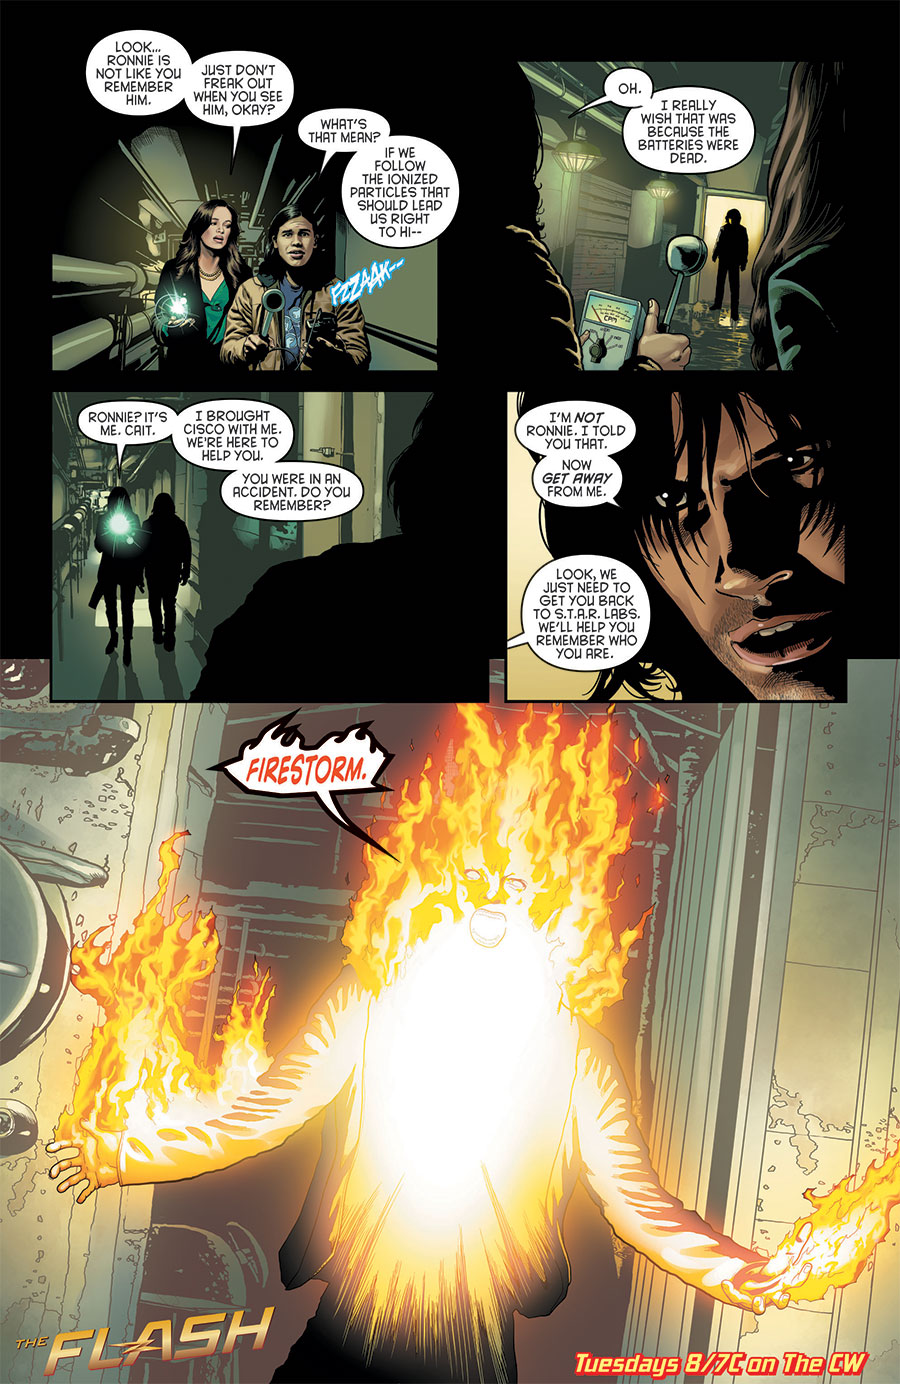 The Flash episode 09 comic promotion featuring Firestorm